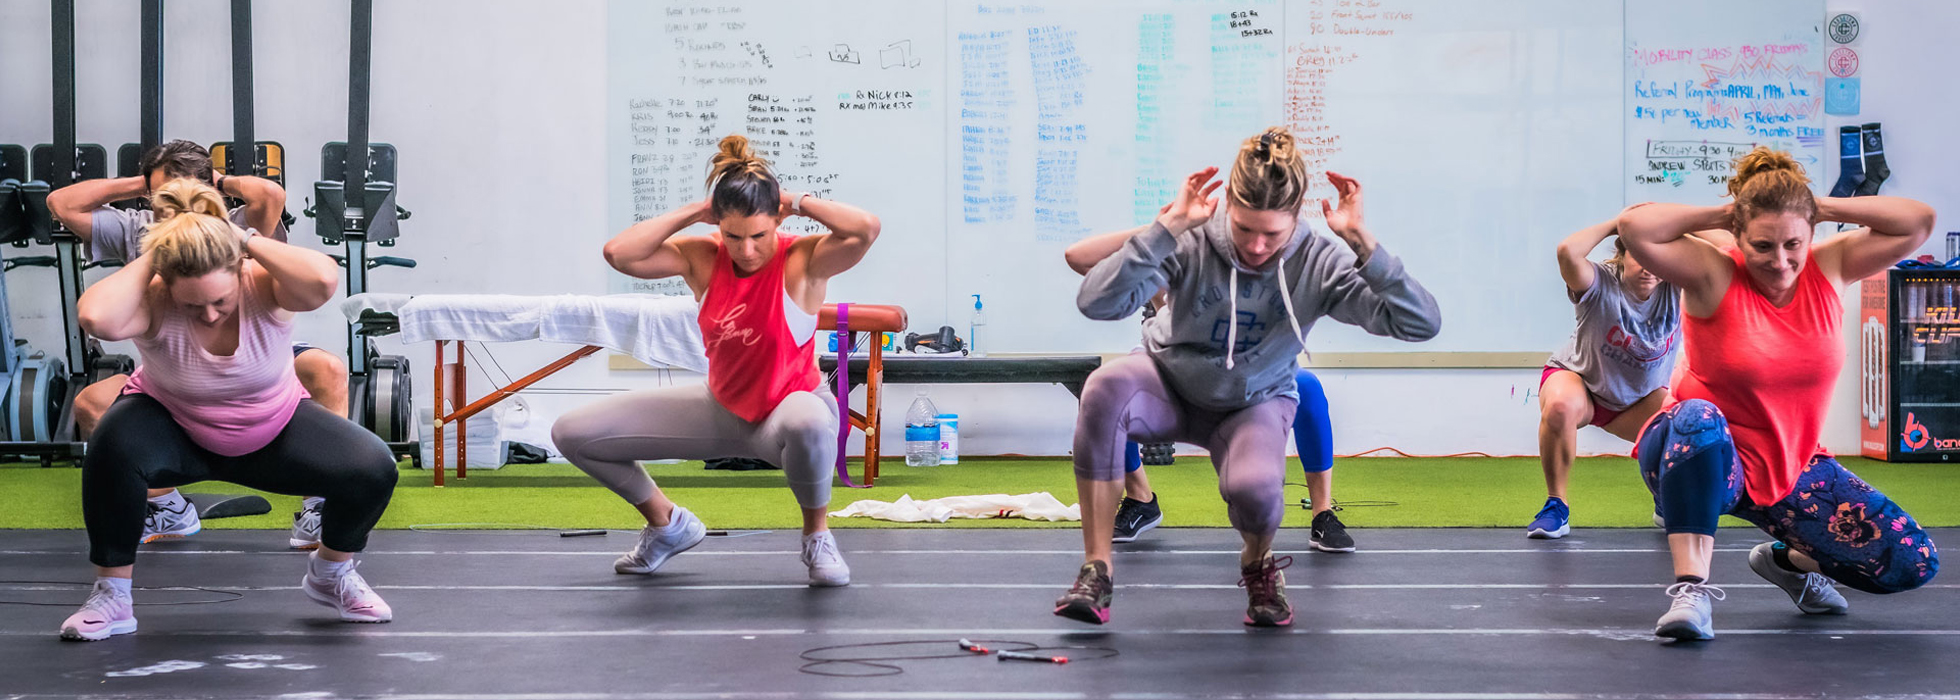 CrossFit Training in Moorpark CA, CrossFit Training near Thousand Oaks CA, CrossFit Training near Camarillo CA, CrossFit Training near Simi Valley CA